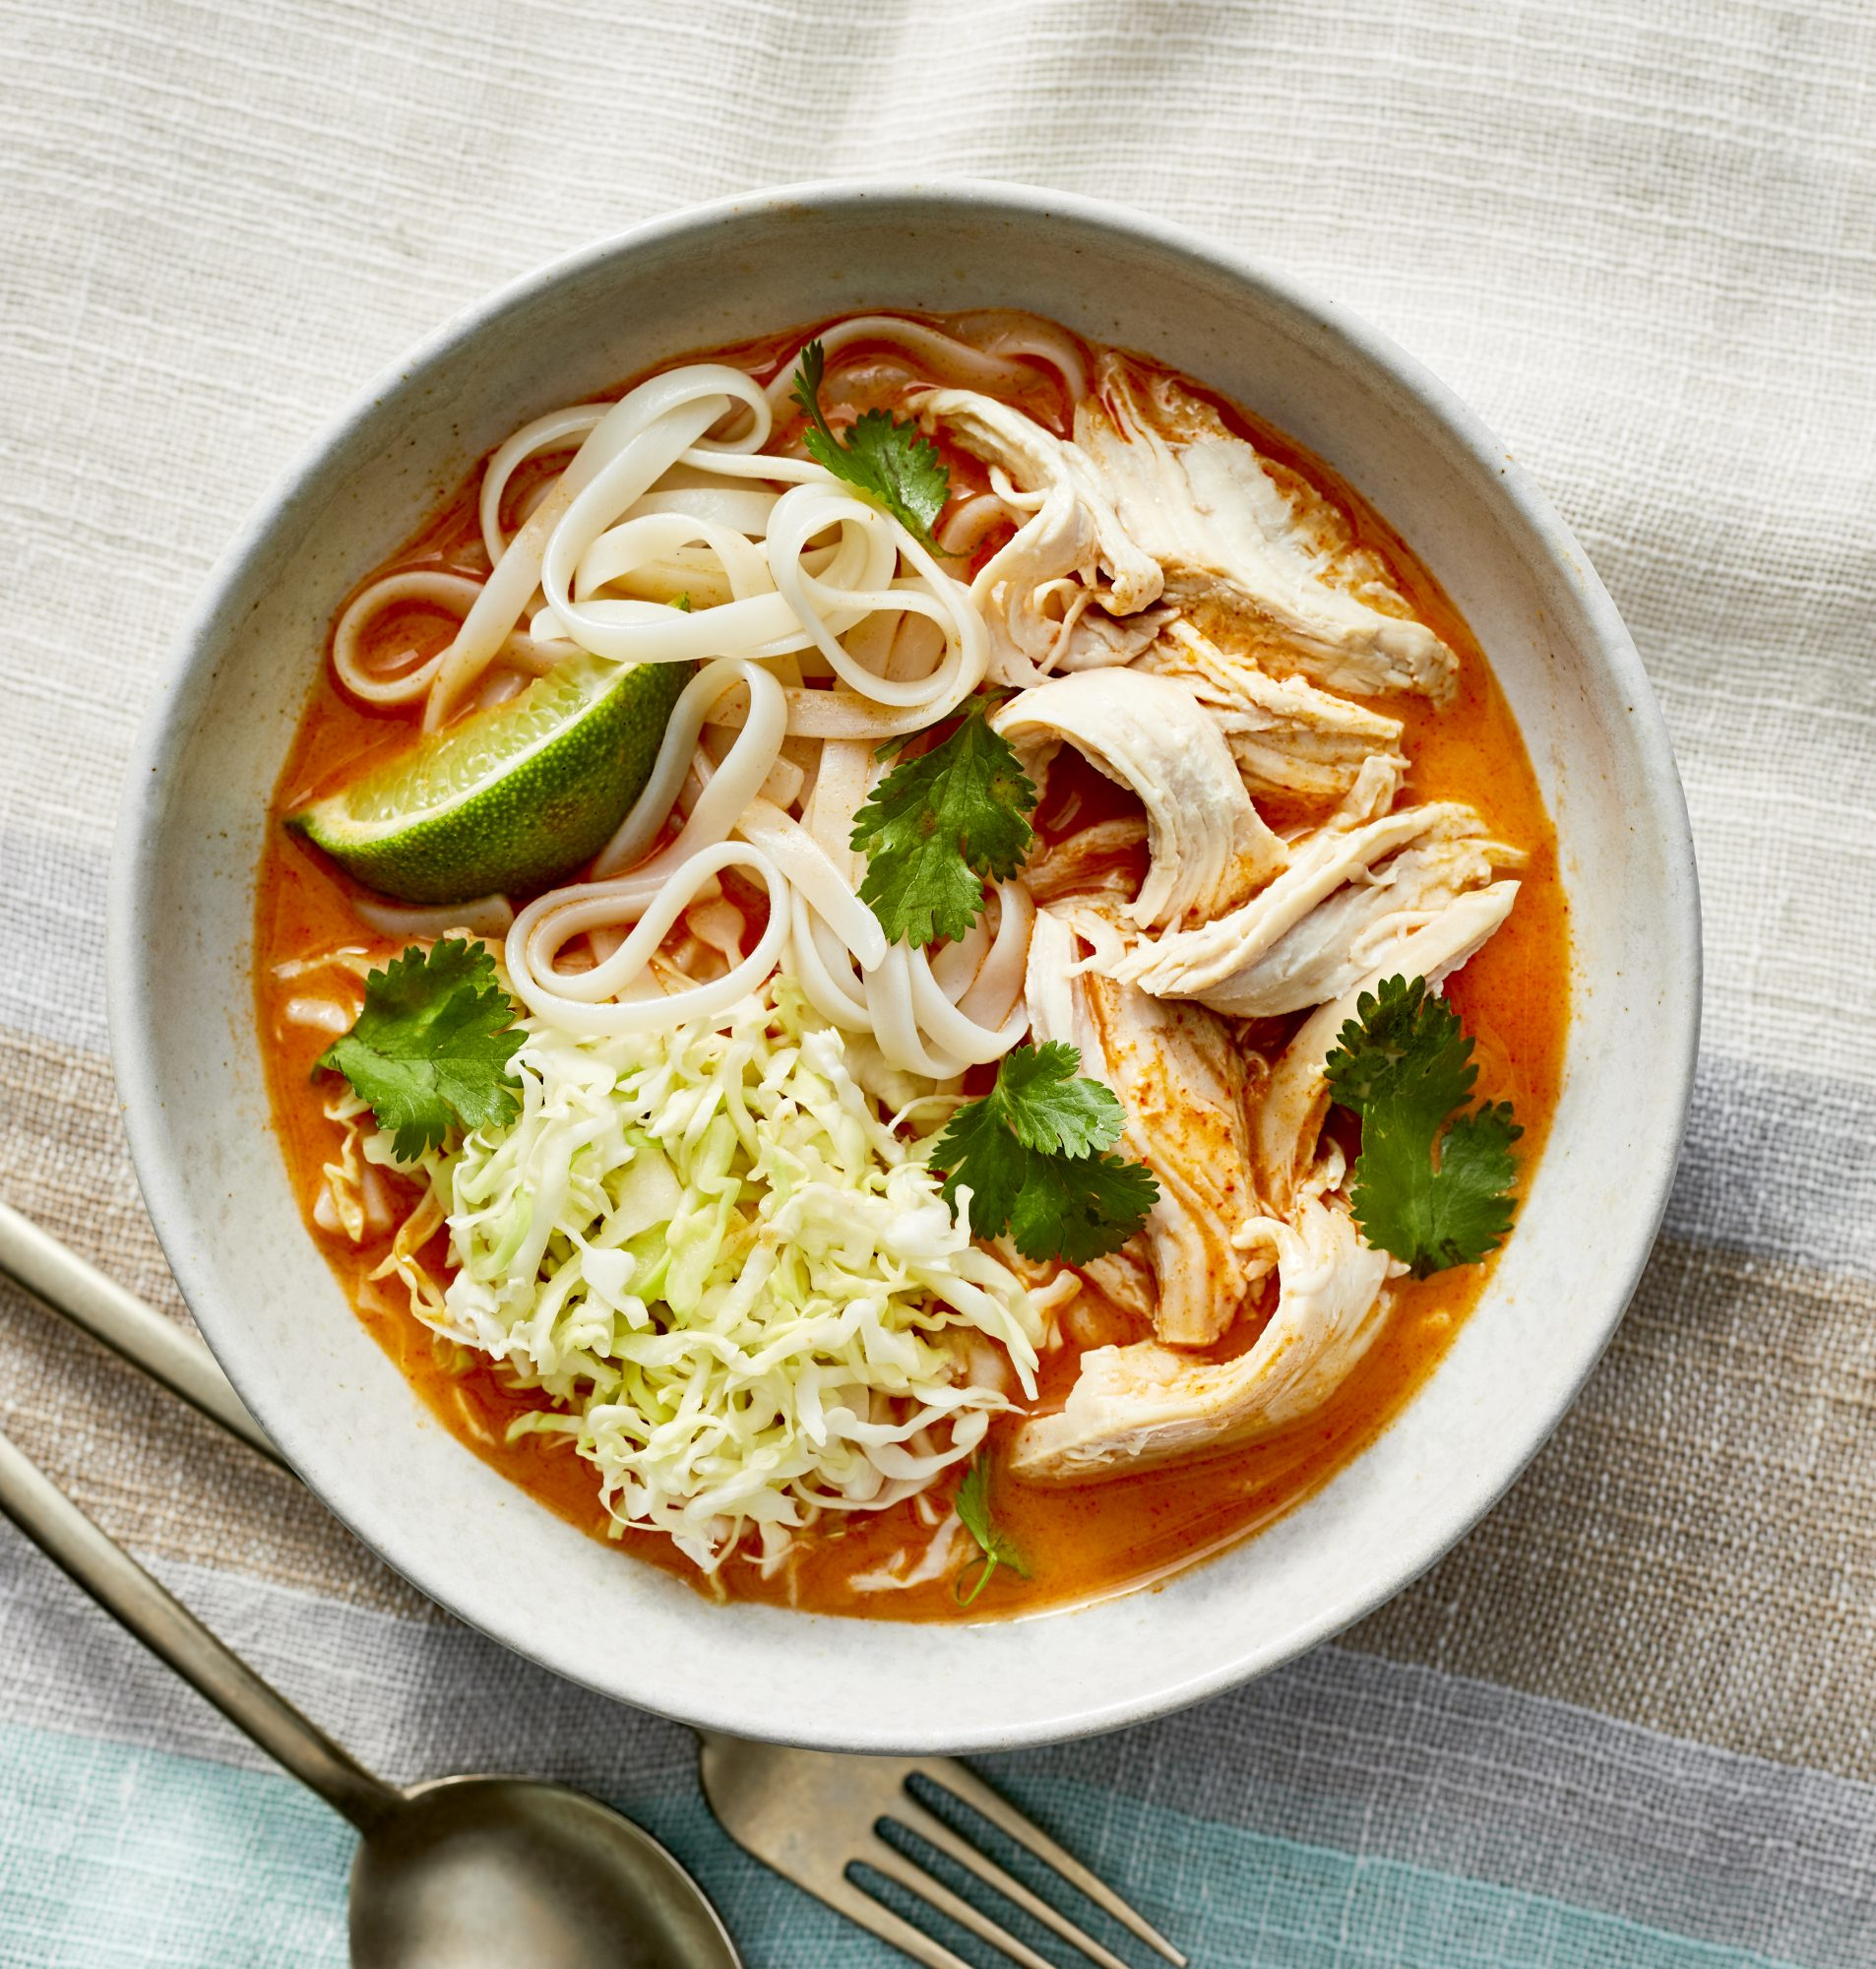 Poached Chicken Noodle Bowl image